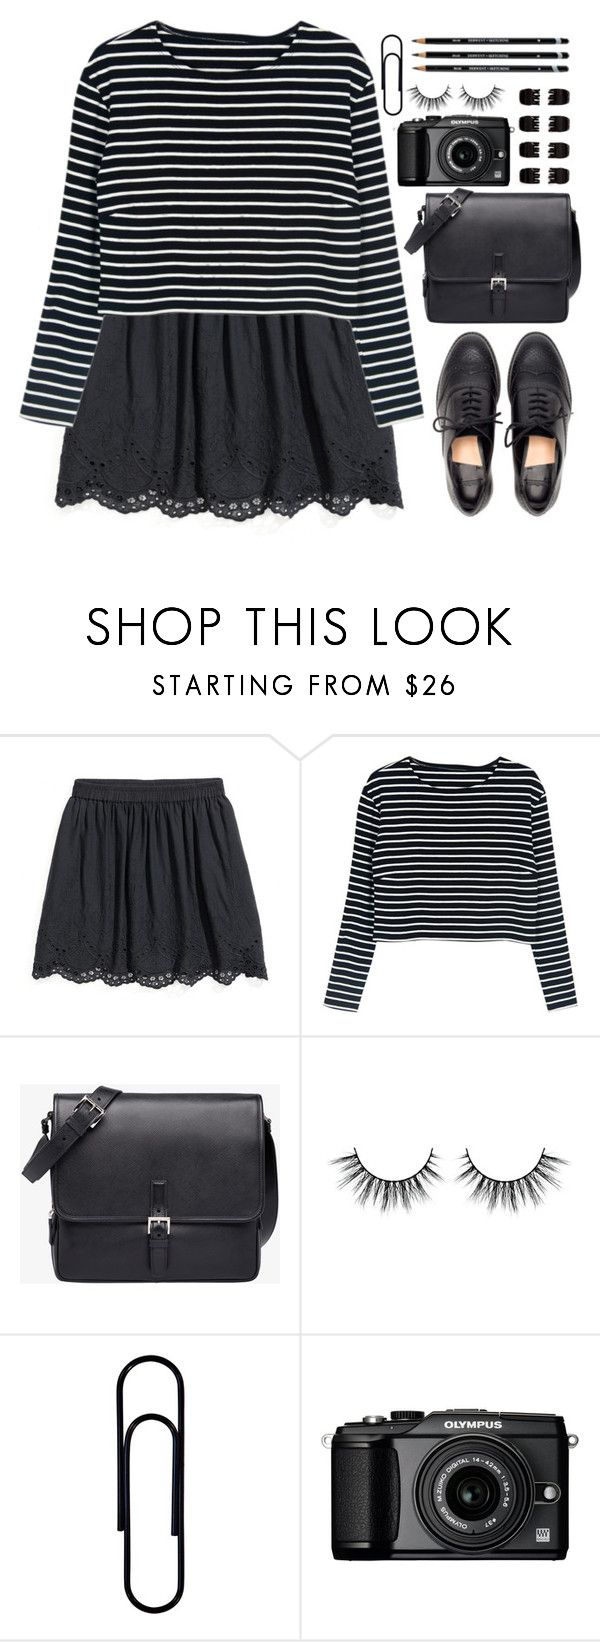 """""""Noonie Bao - Criminal Love"""" by annaclaraalvez ❤ liked on Polyvore featuring WithChic, Prada, Olympus and Forever 21"""